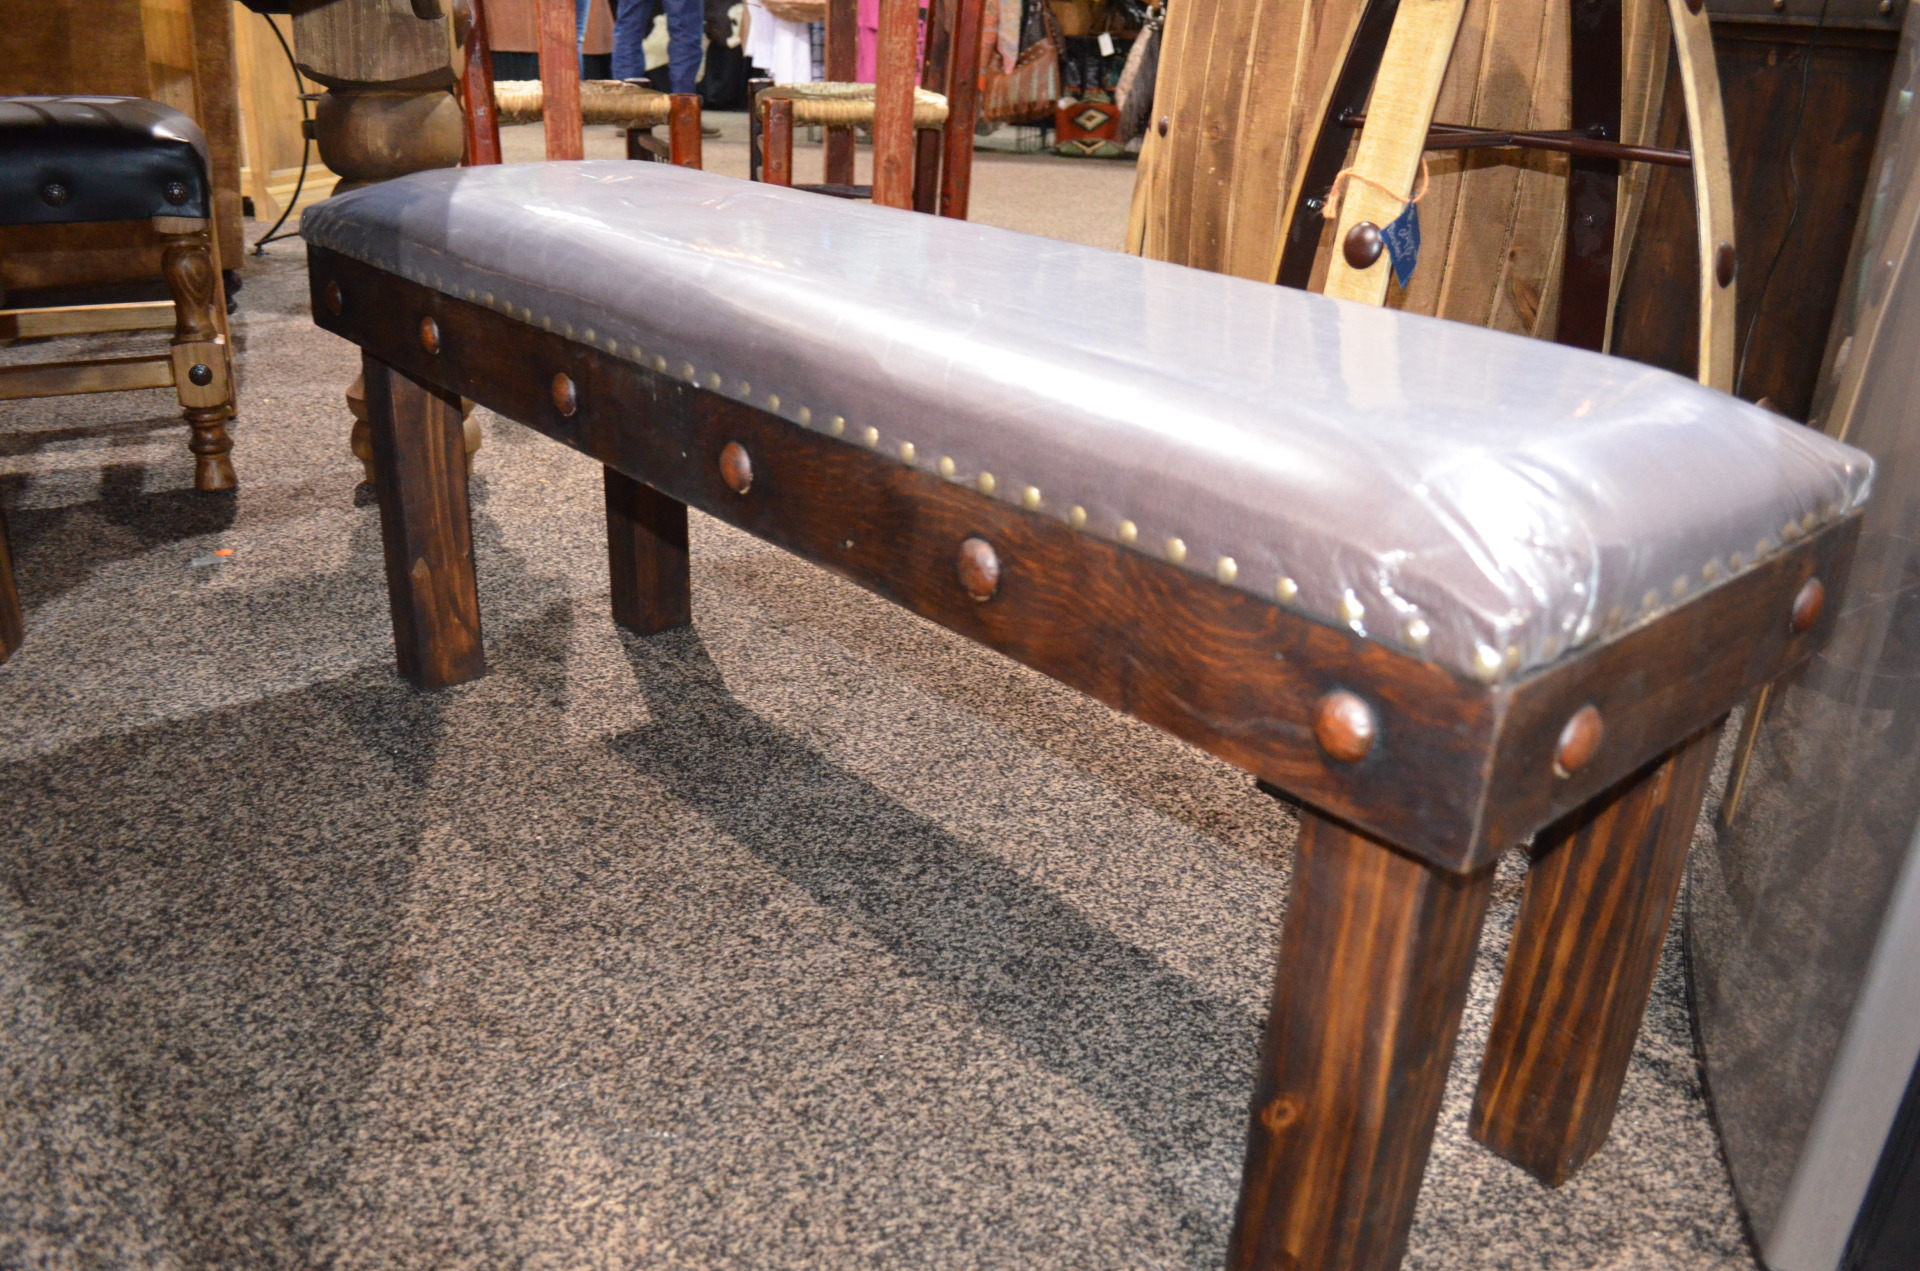 4' Laguna Bench with Leather Seat. $373